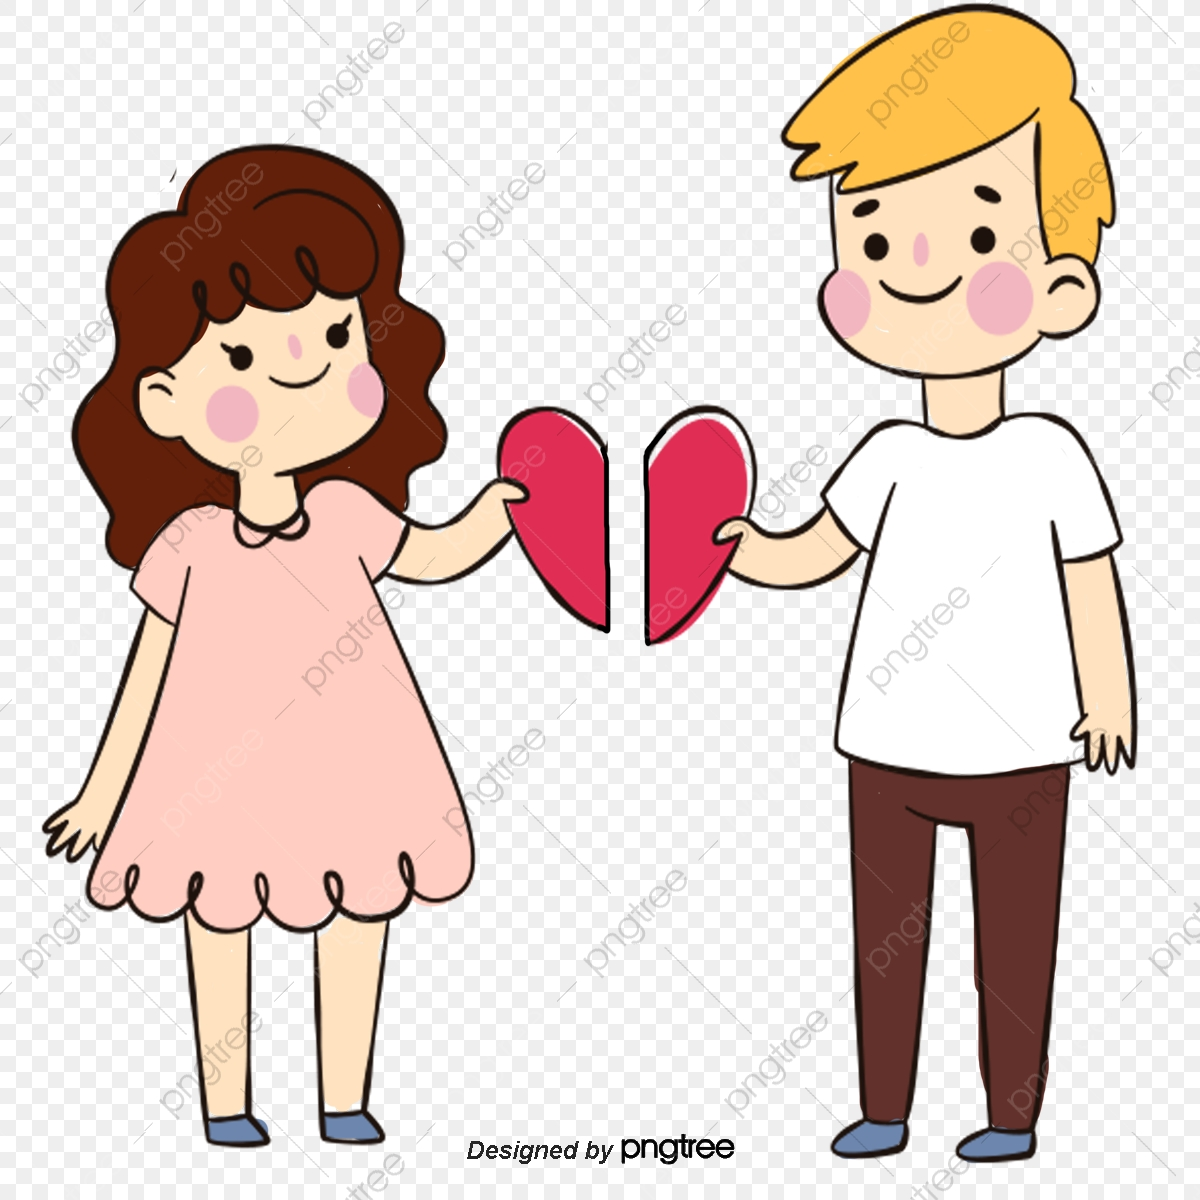 Love Boy Girl, Love, Girl, Boy PNG Transparent Clipart Image and PSD.